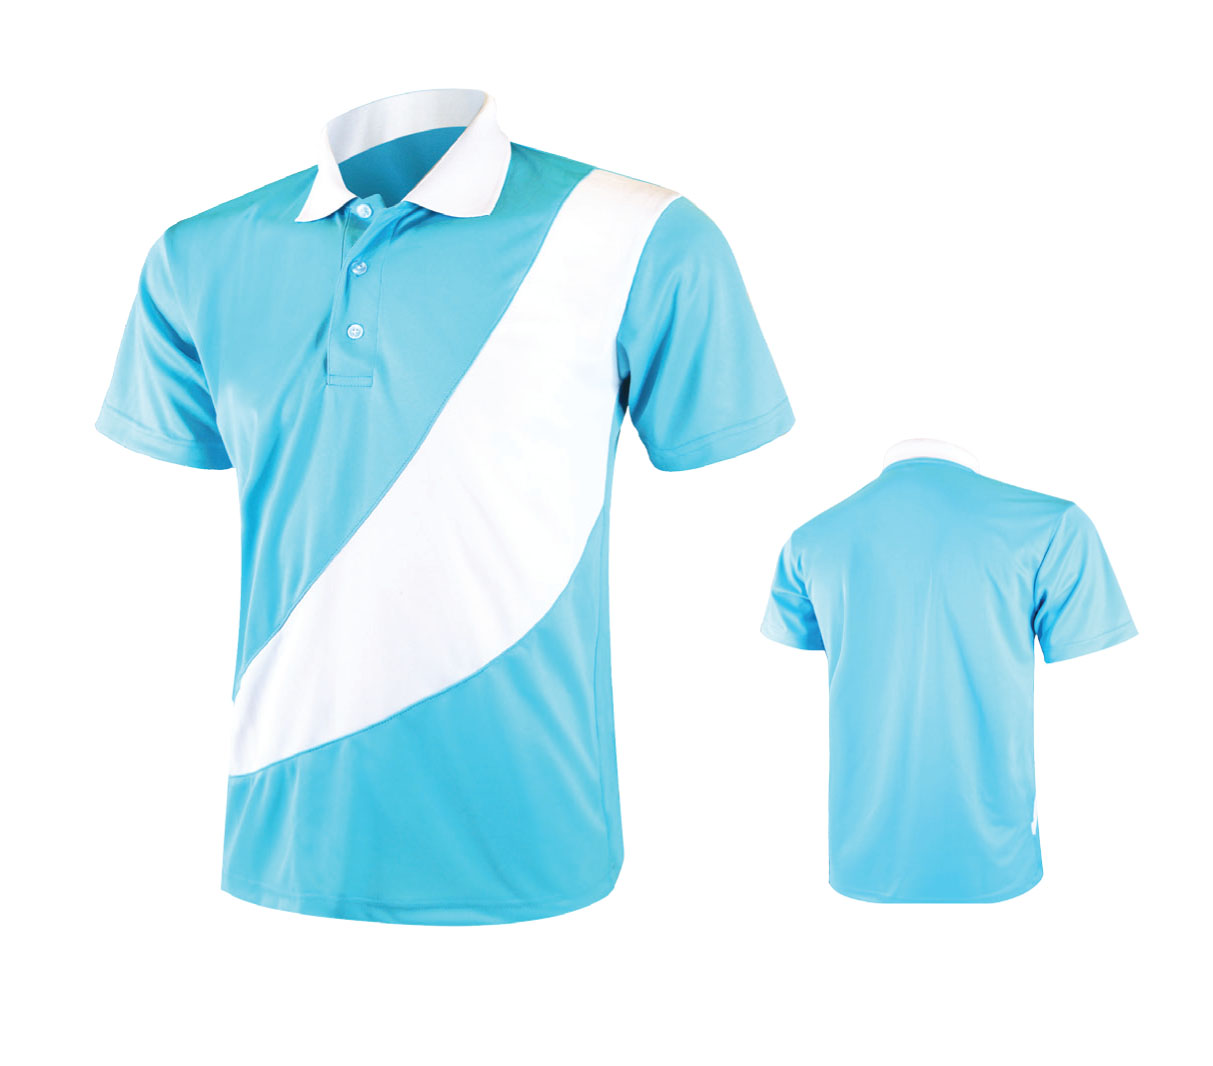 c7ba0bef3 Customized Polo T Shirt | Corporate Gifts